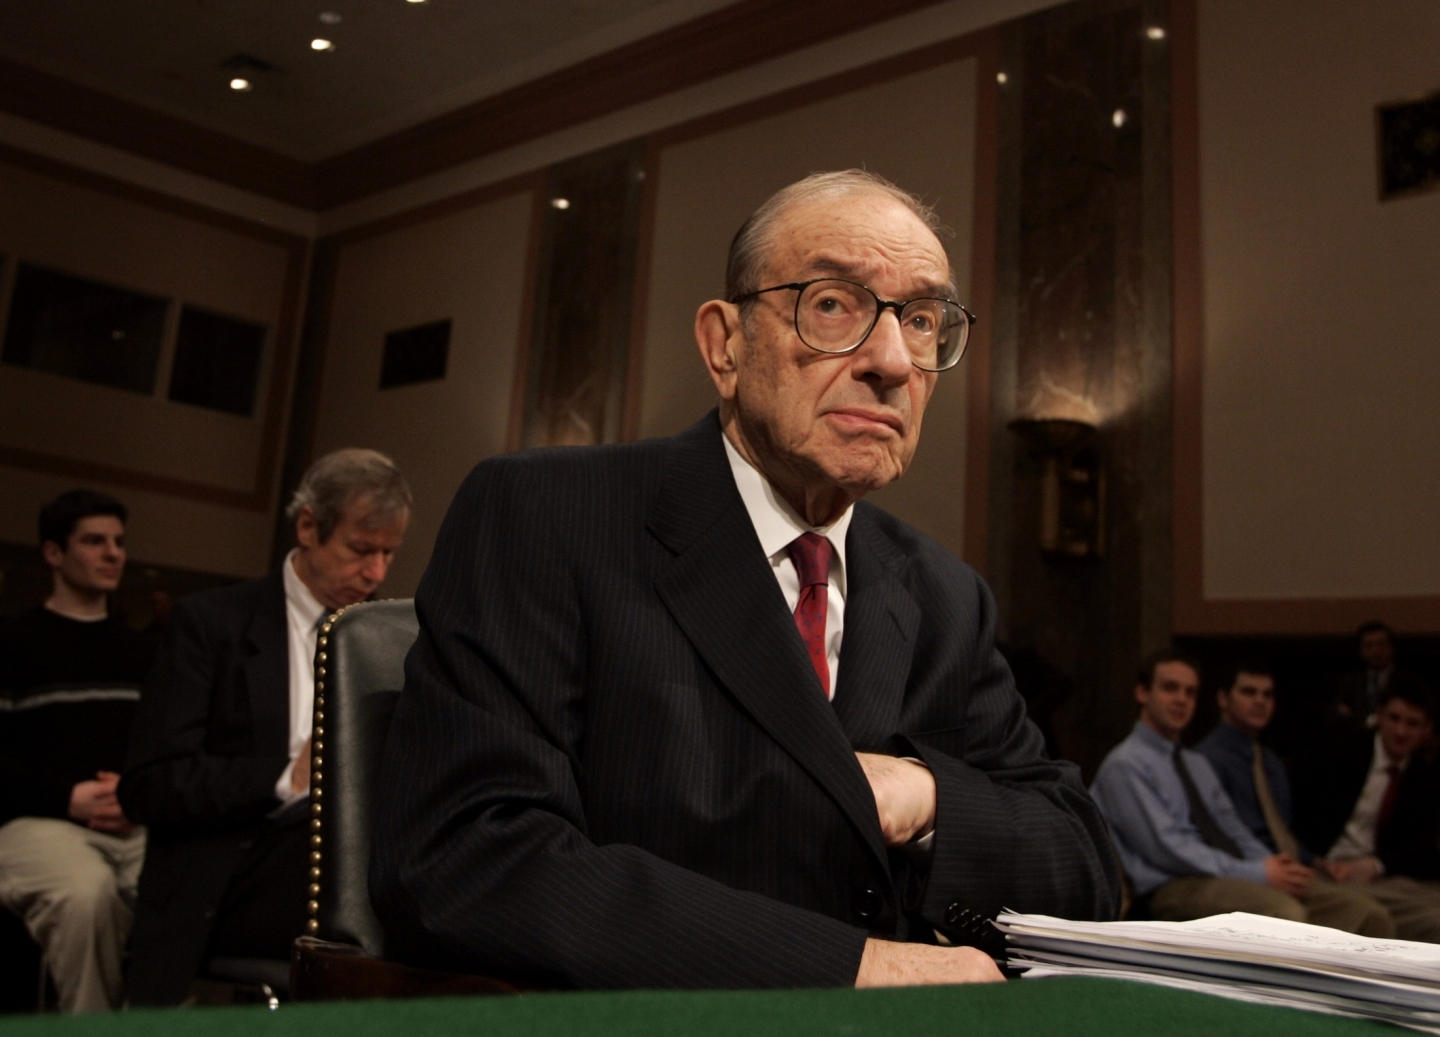 Federal Reserve Chariman Alan Greenspan pauses before the start of a Senate Banking Committee hearing on February 16, 2005 in Washington. (AP Photo/Evan Vucci)